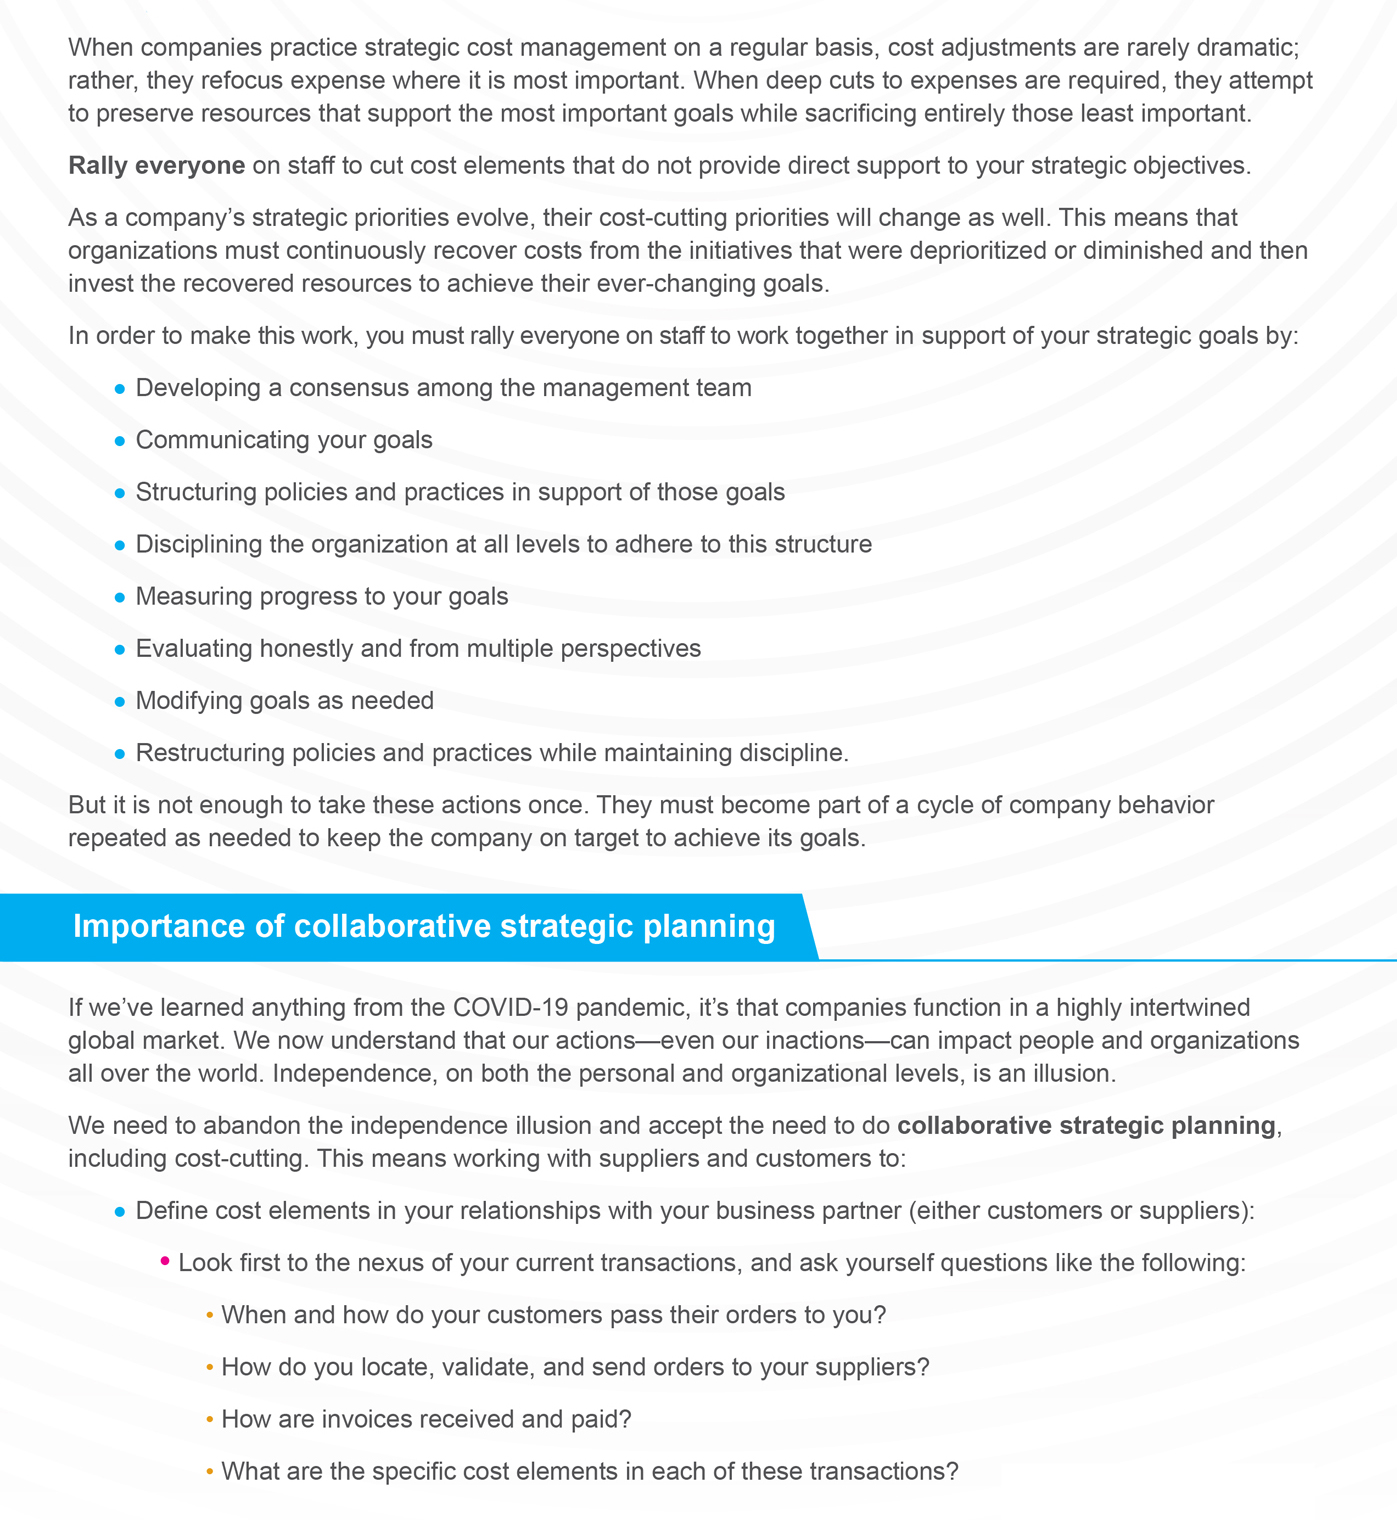 Align Cost Cutting with Strategic Objectives